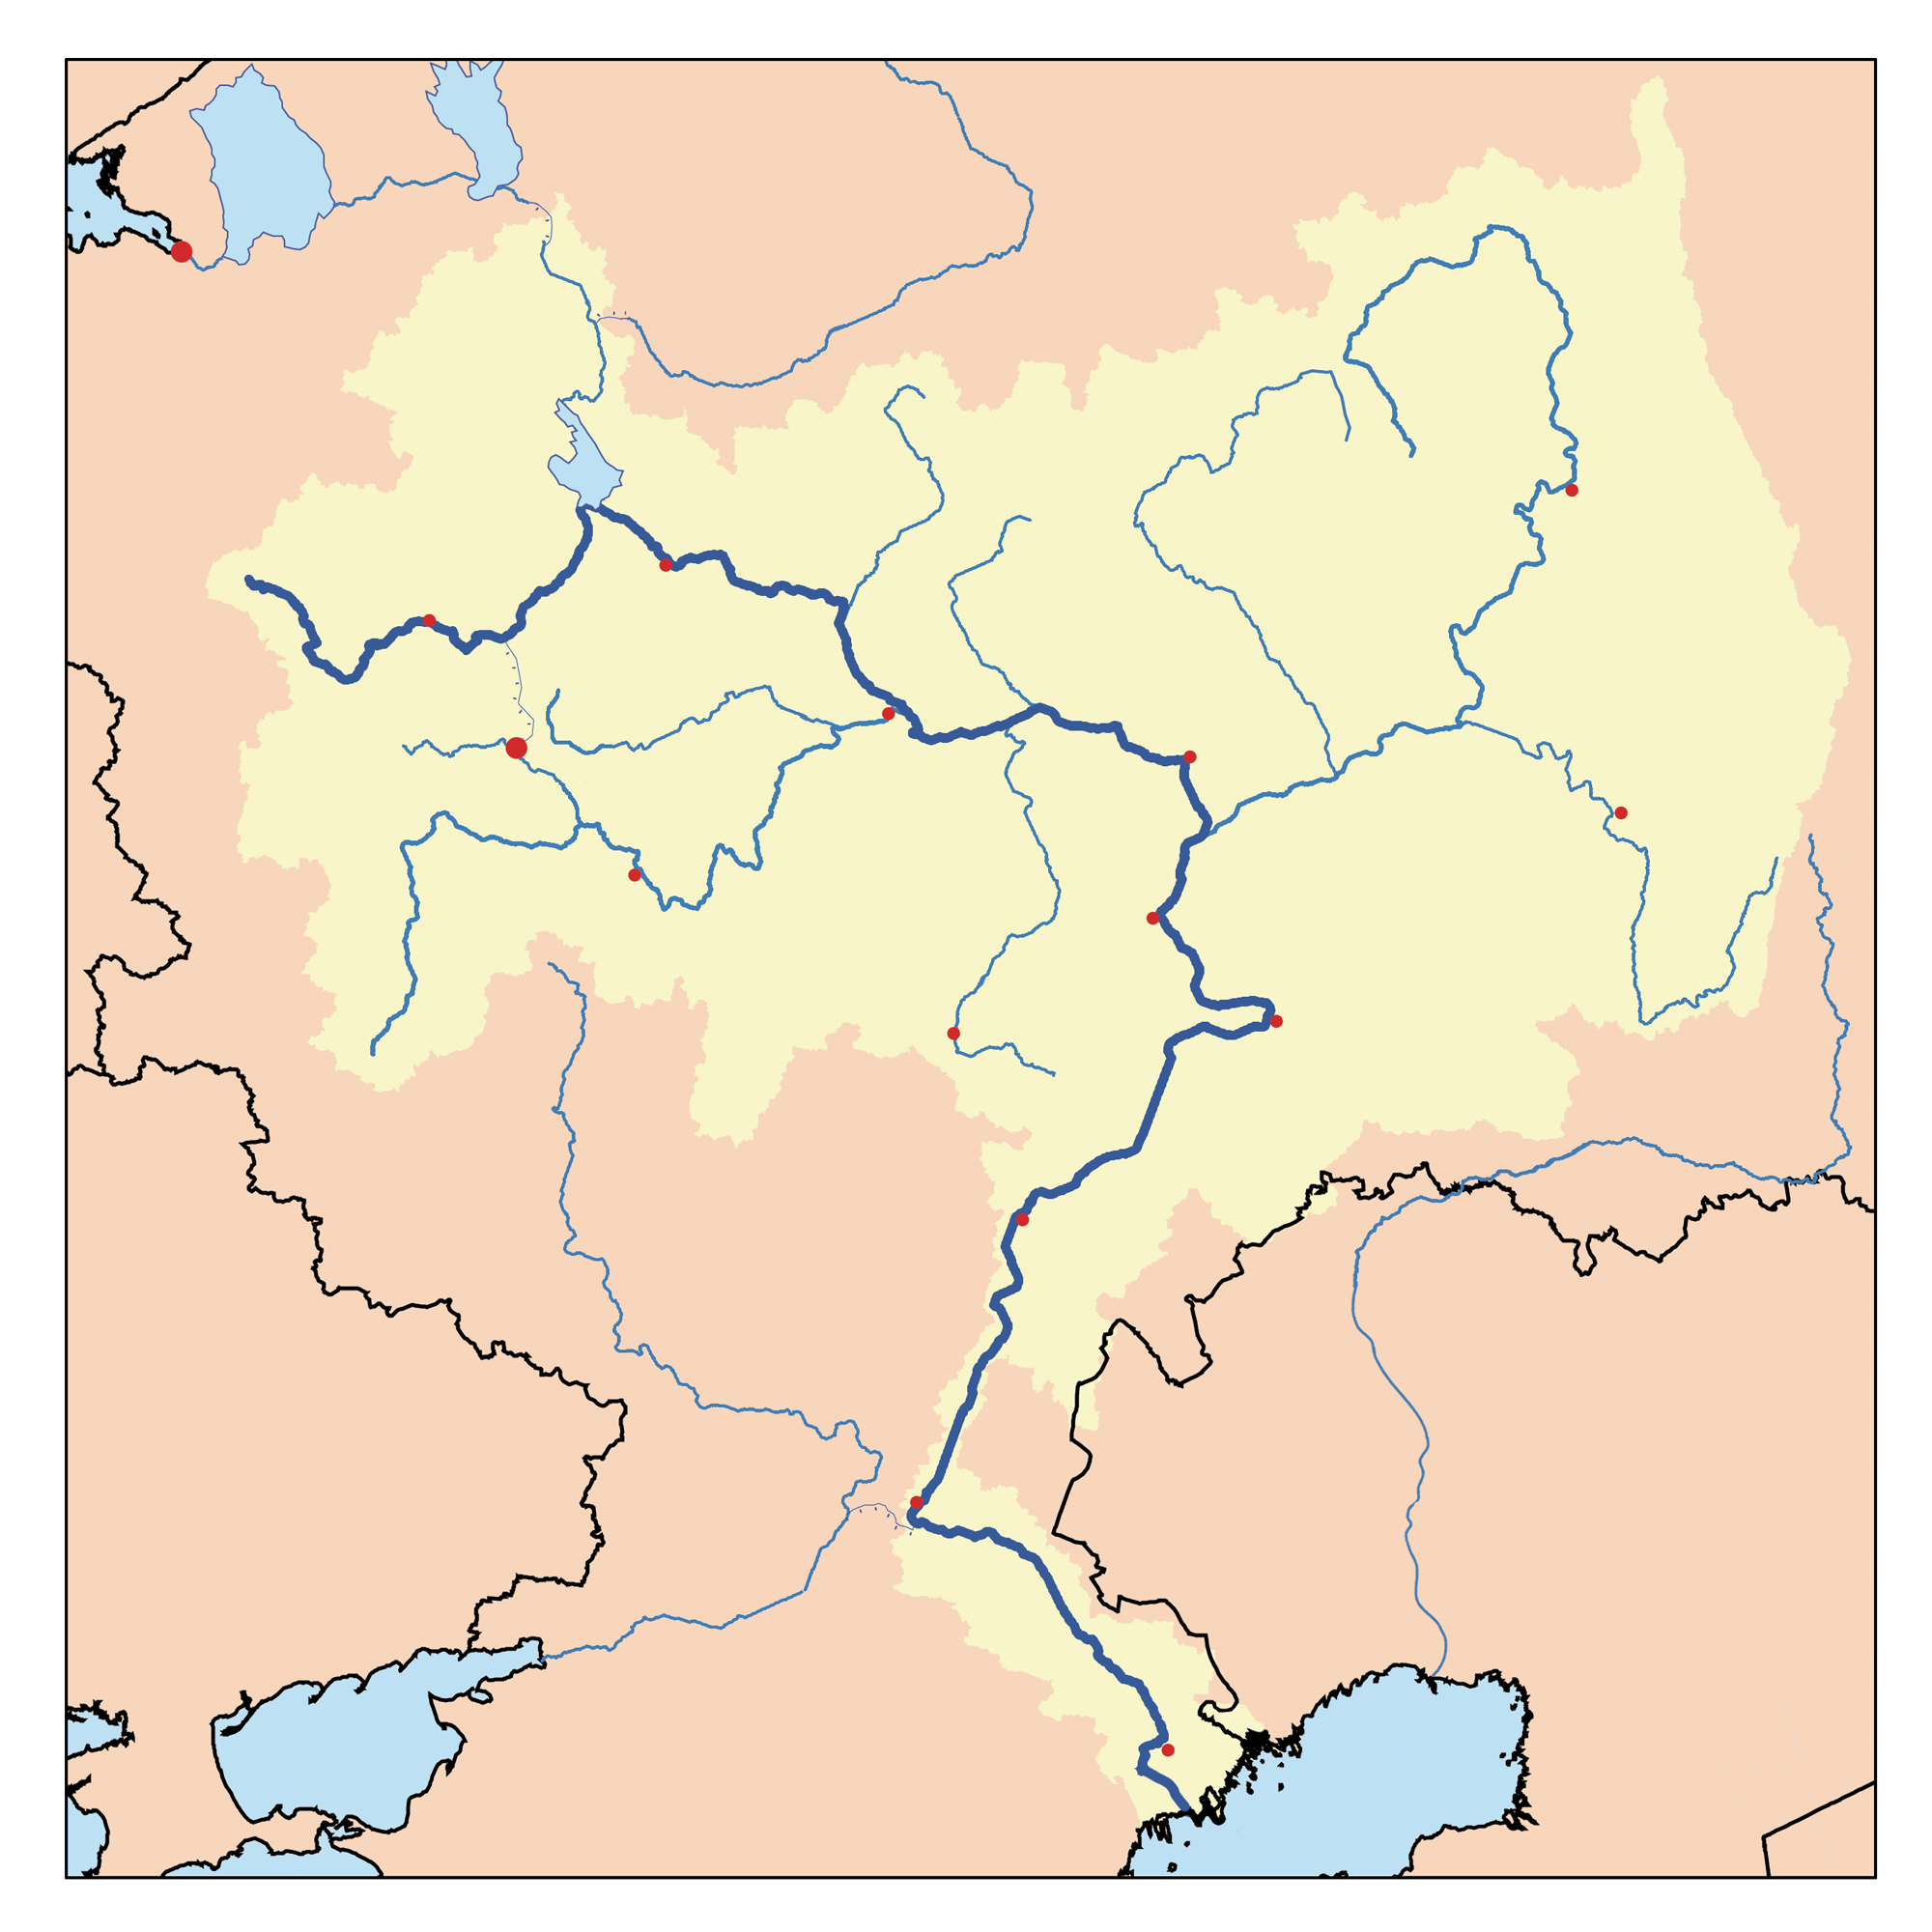 Volga River Map - The volga river